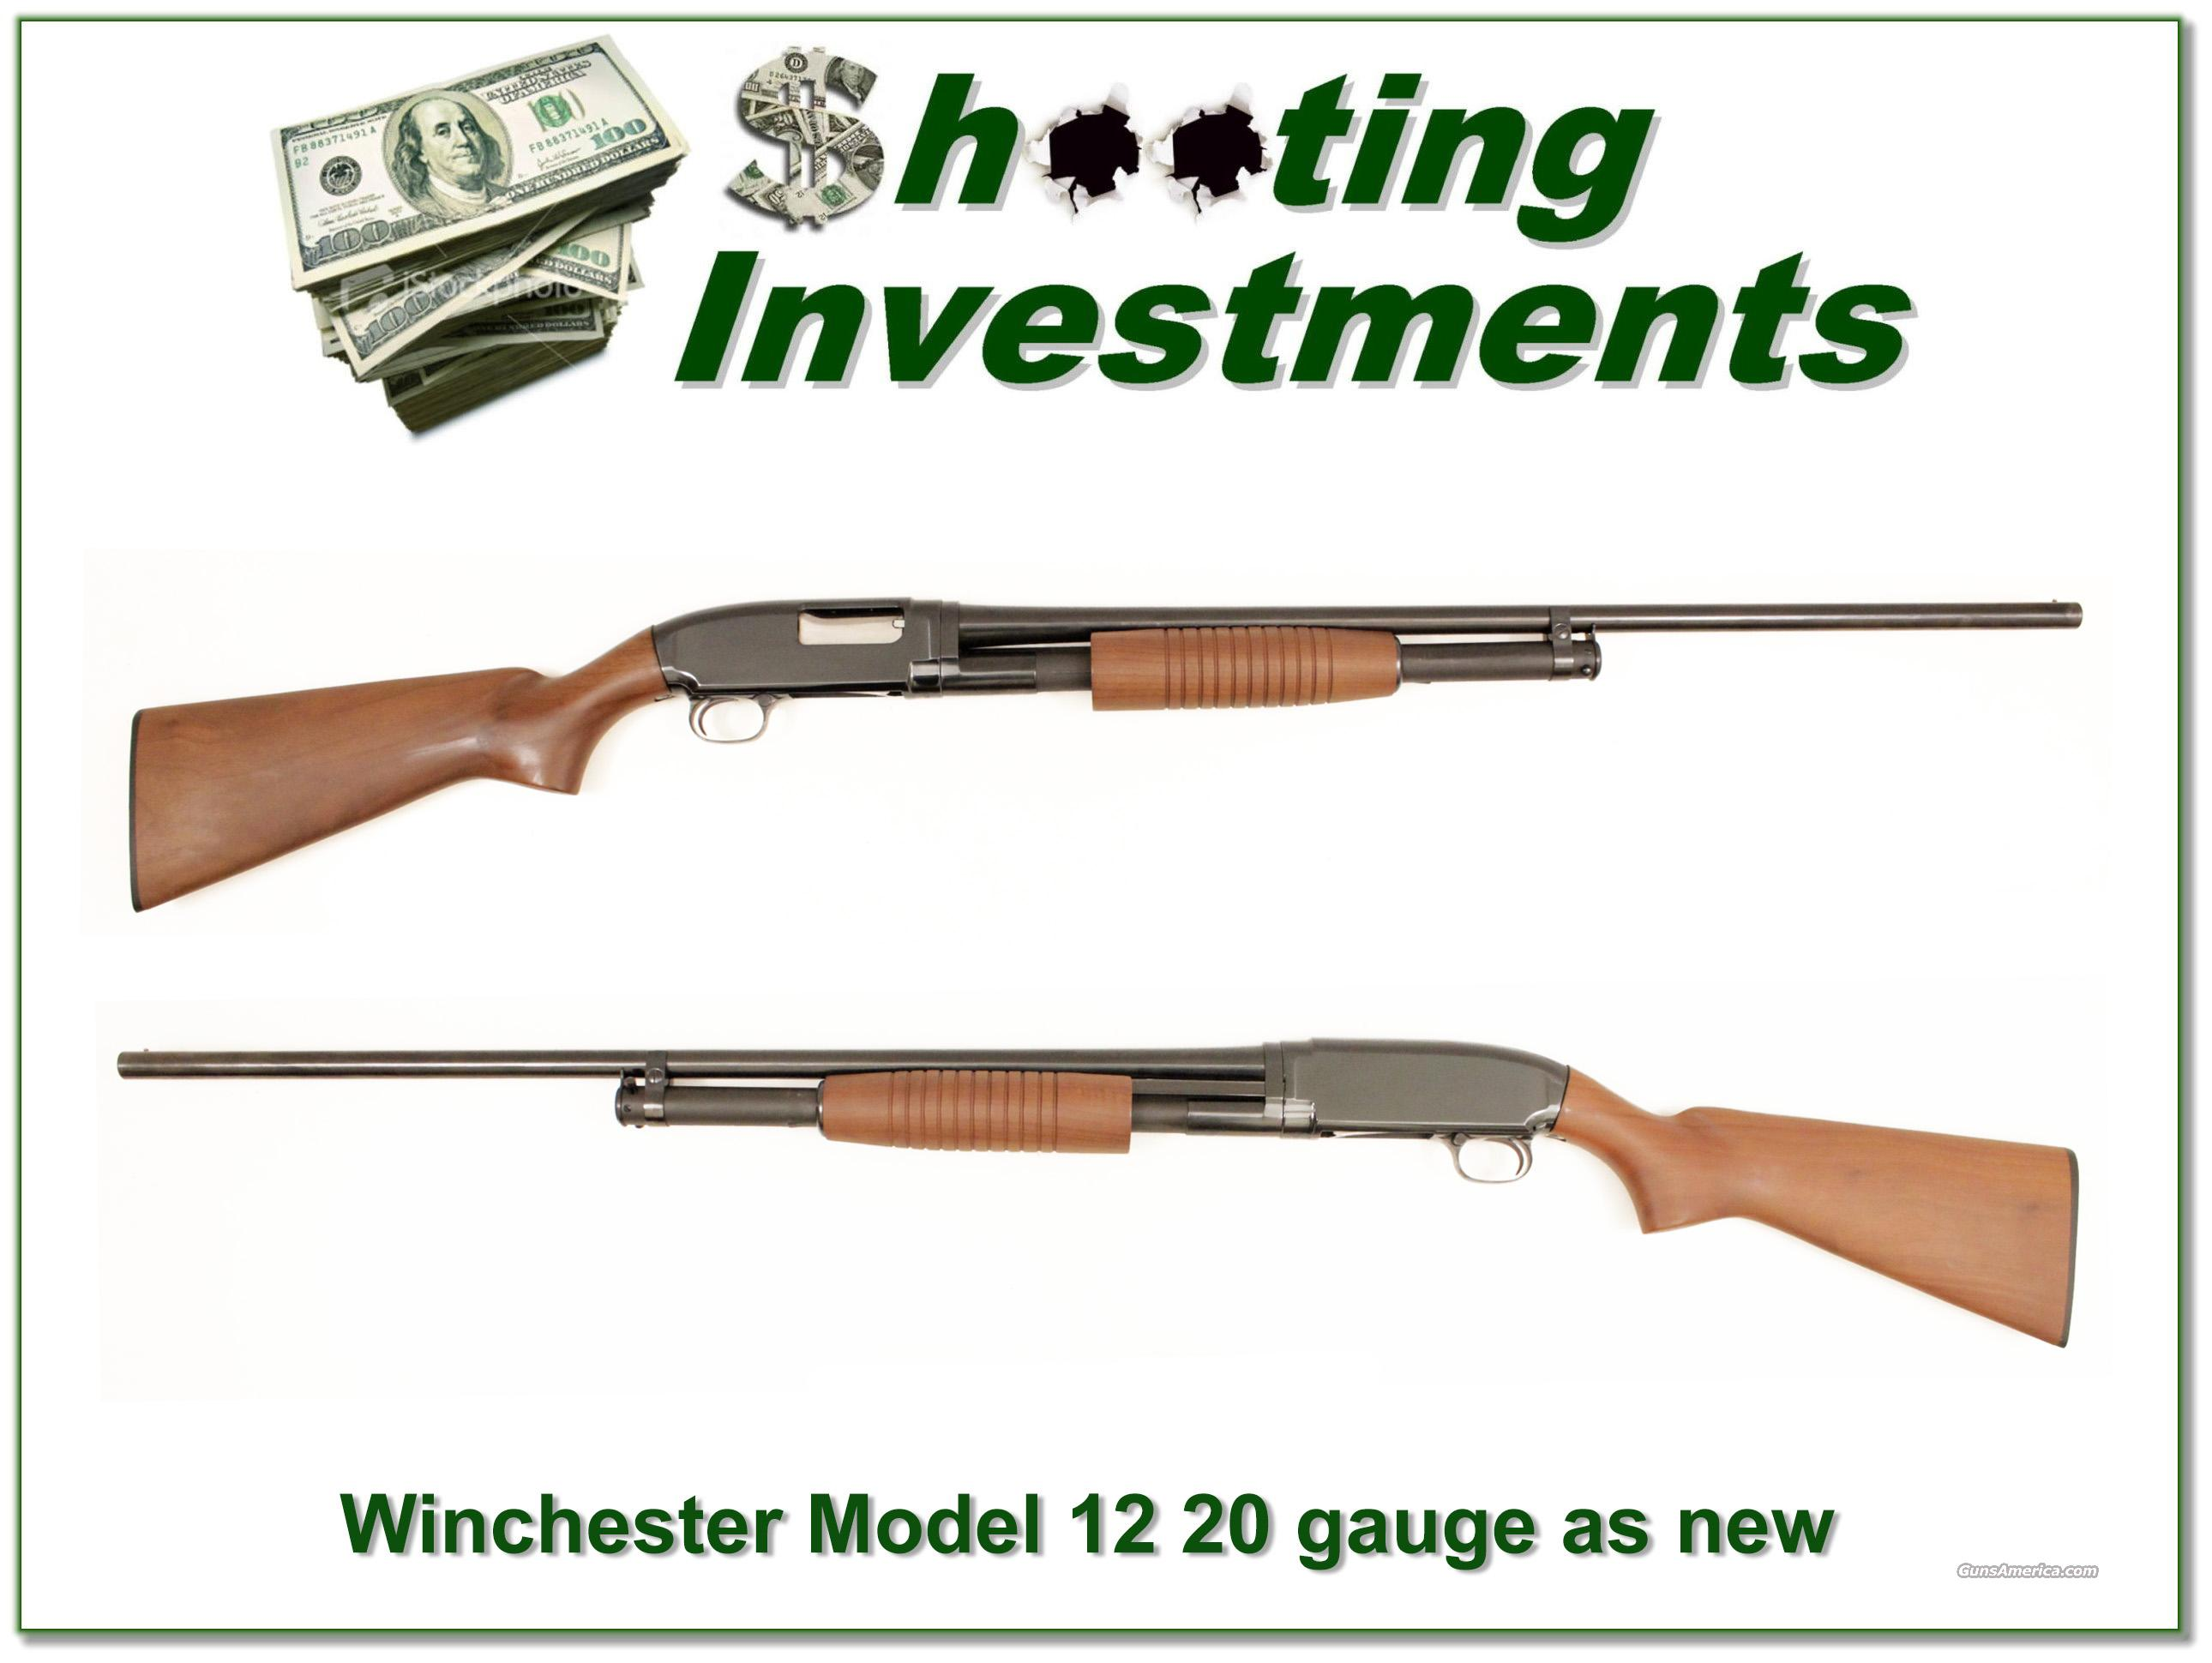 Winchester Model 12 20 gauge 1940 restored to as new  Guns > Shotguns > Winchester Shotguns - Modern > Pump Action > Hunting